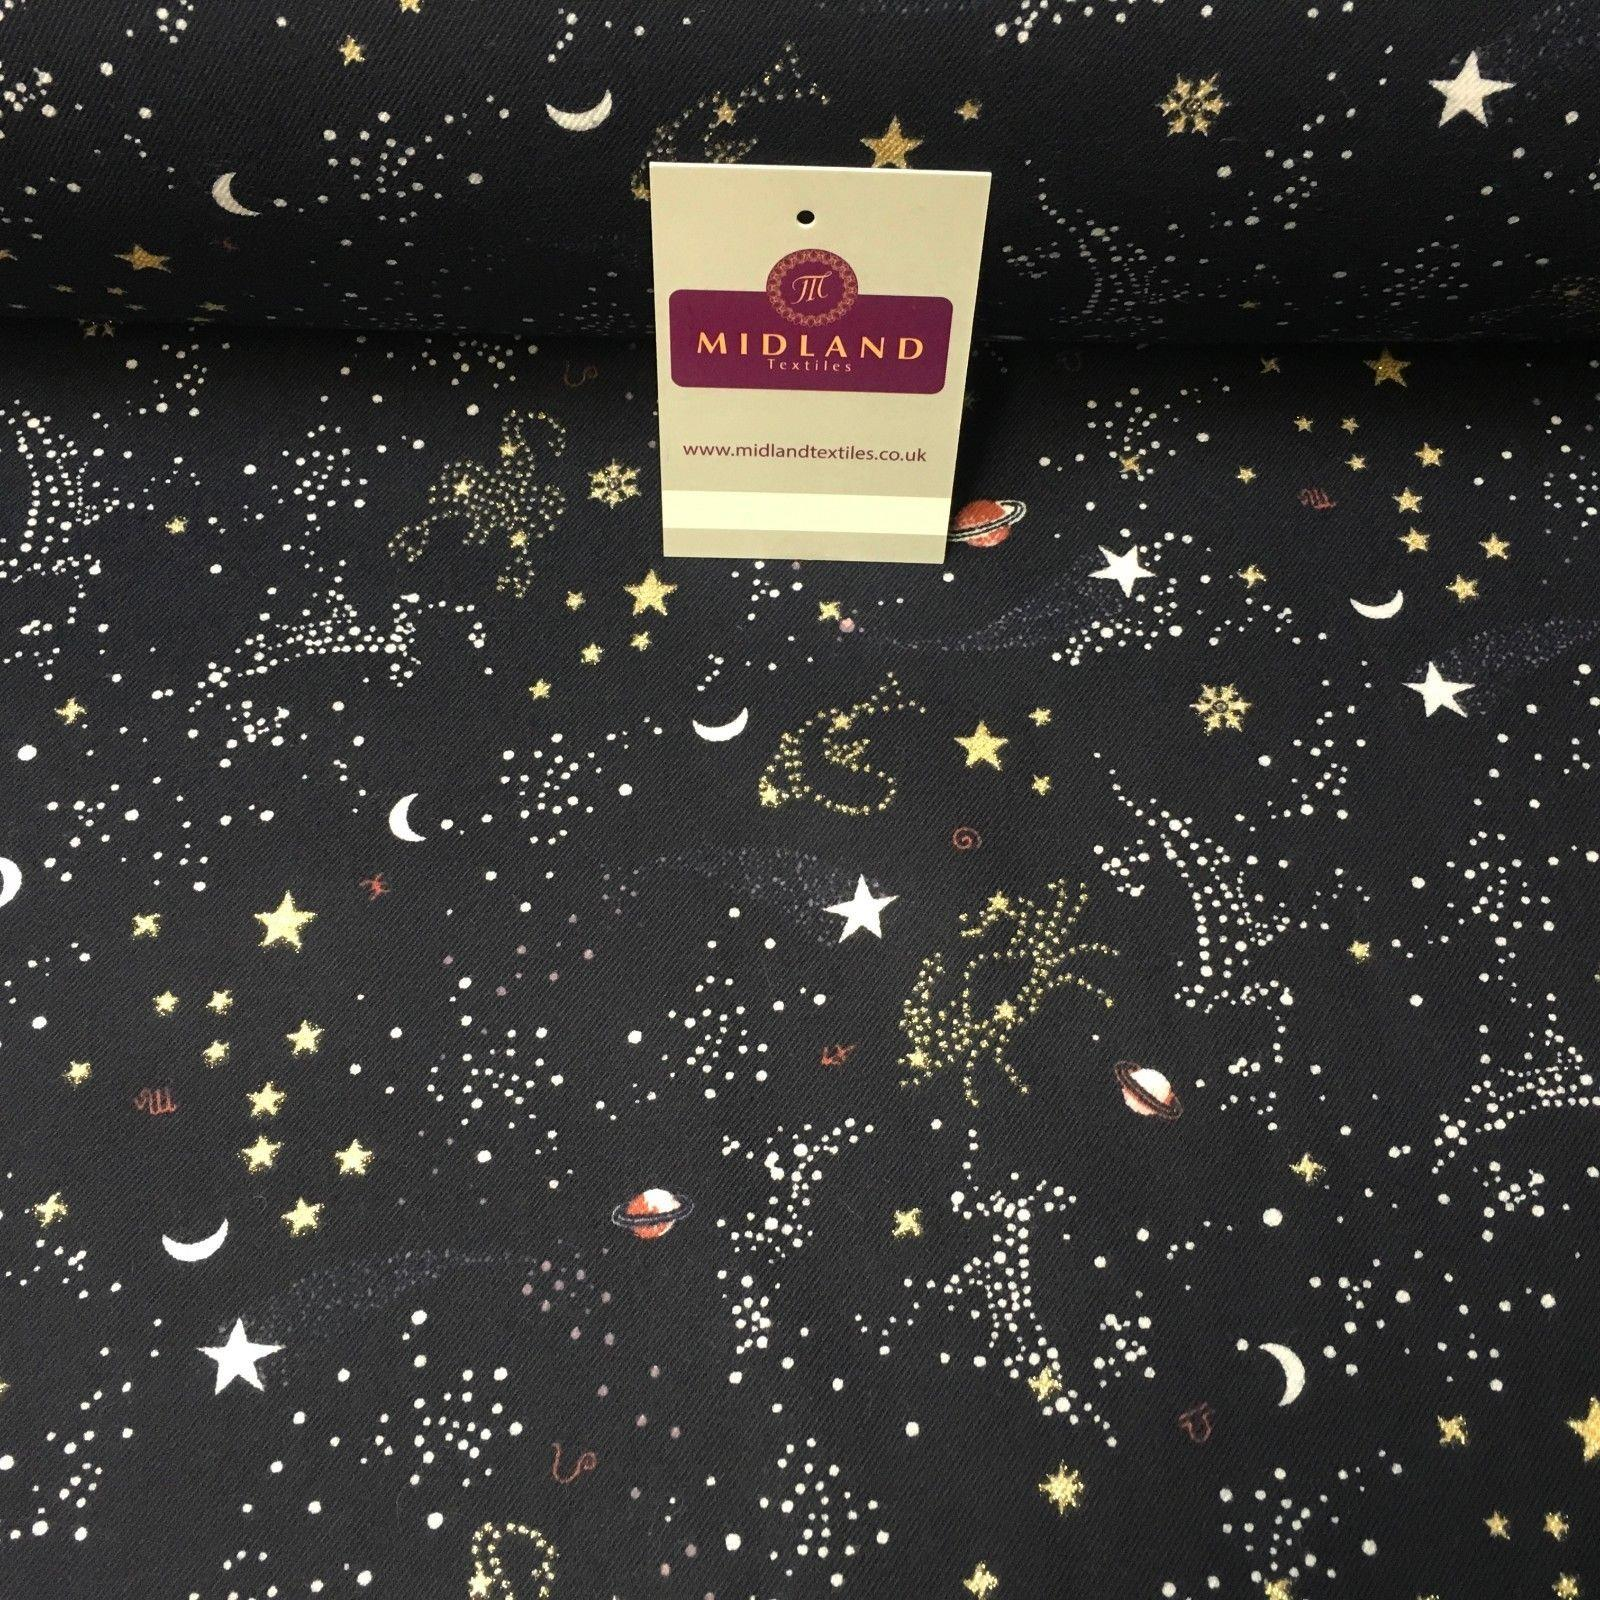 Navy star moon milky way Brushed Cotton wincyette Soft  Flannel Fabric MK988-21